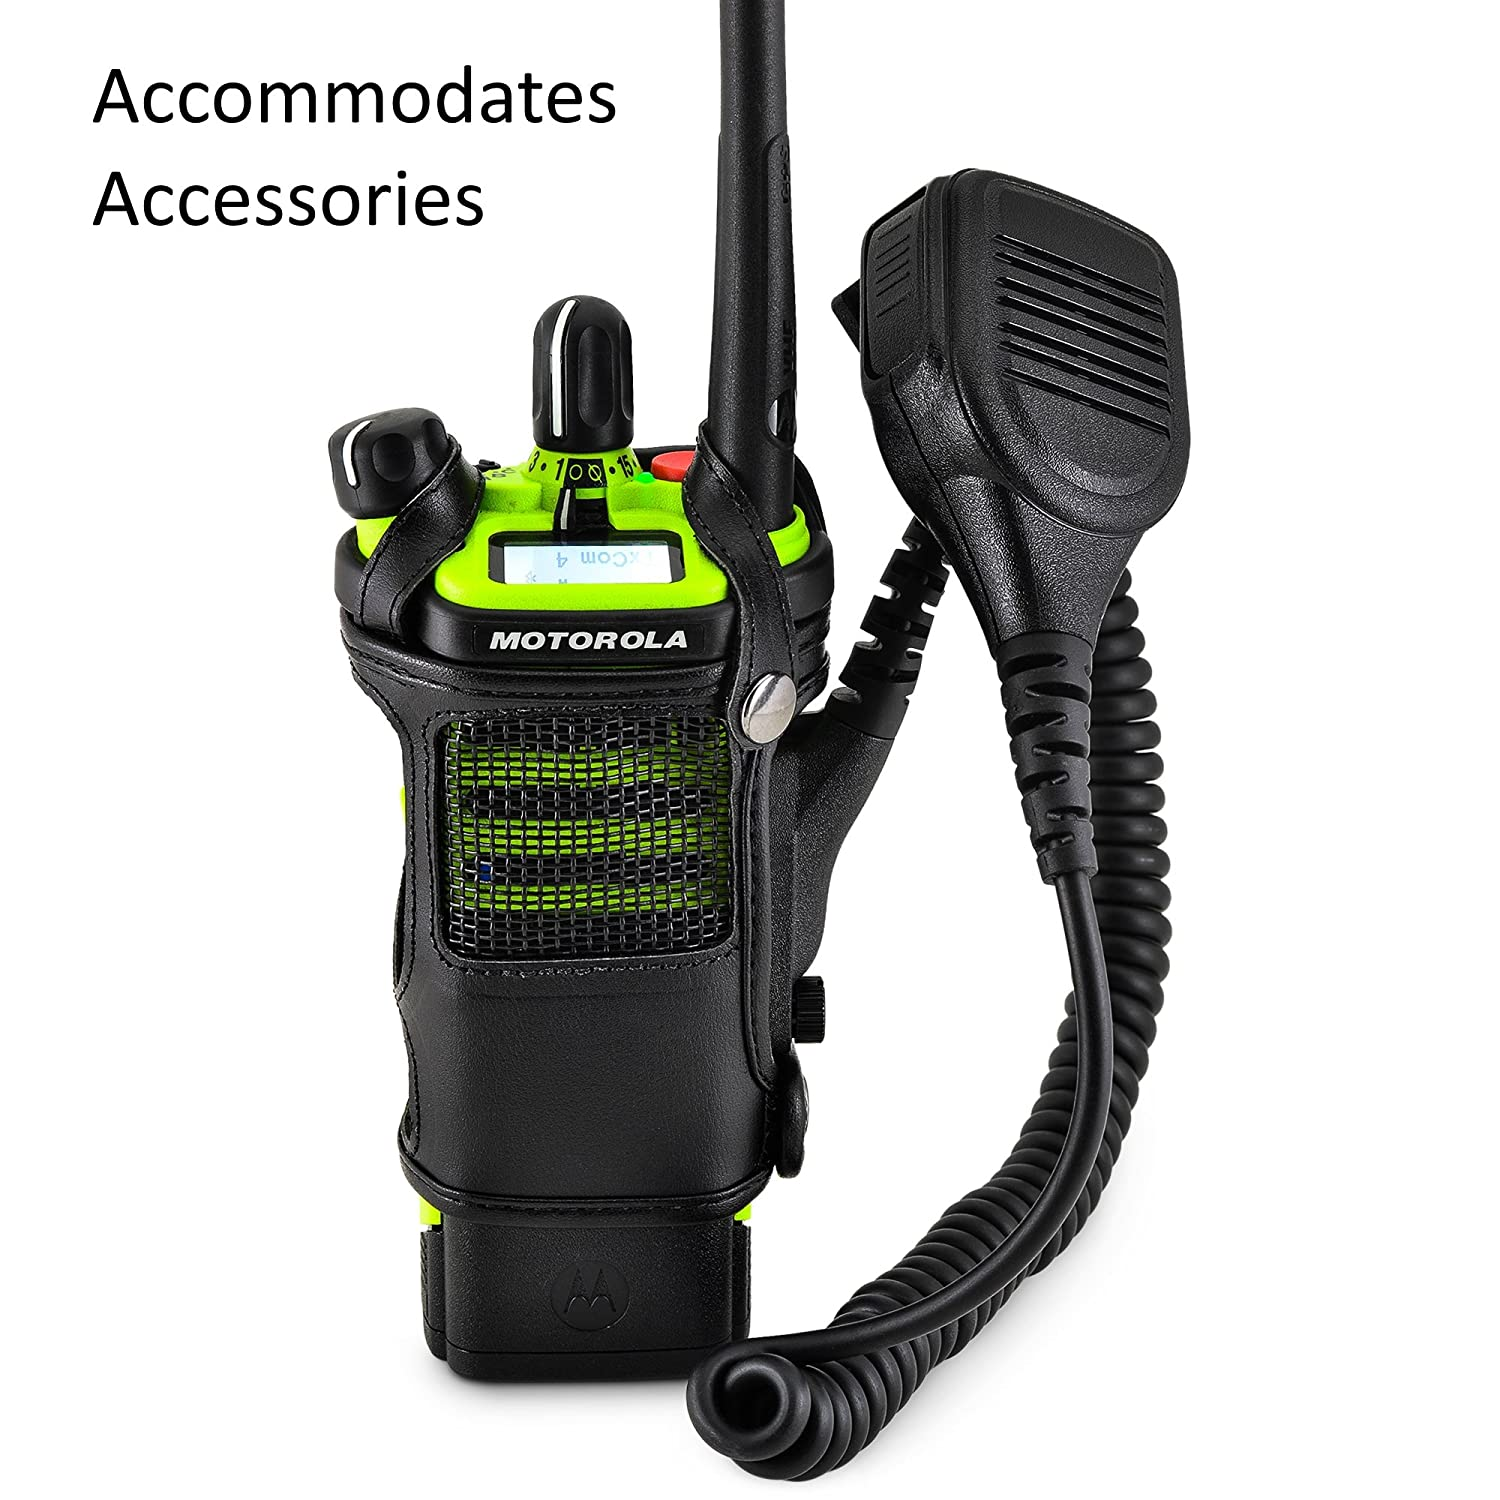 Radio holder motorola apx 6000 - Amazon Com Turtleback Motorola Apx 6000xe Belt Carry Holder Case Black Leather Duty Belt Holster With Heavy Duty Rotating Belt Clip Made In Usa Cell